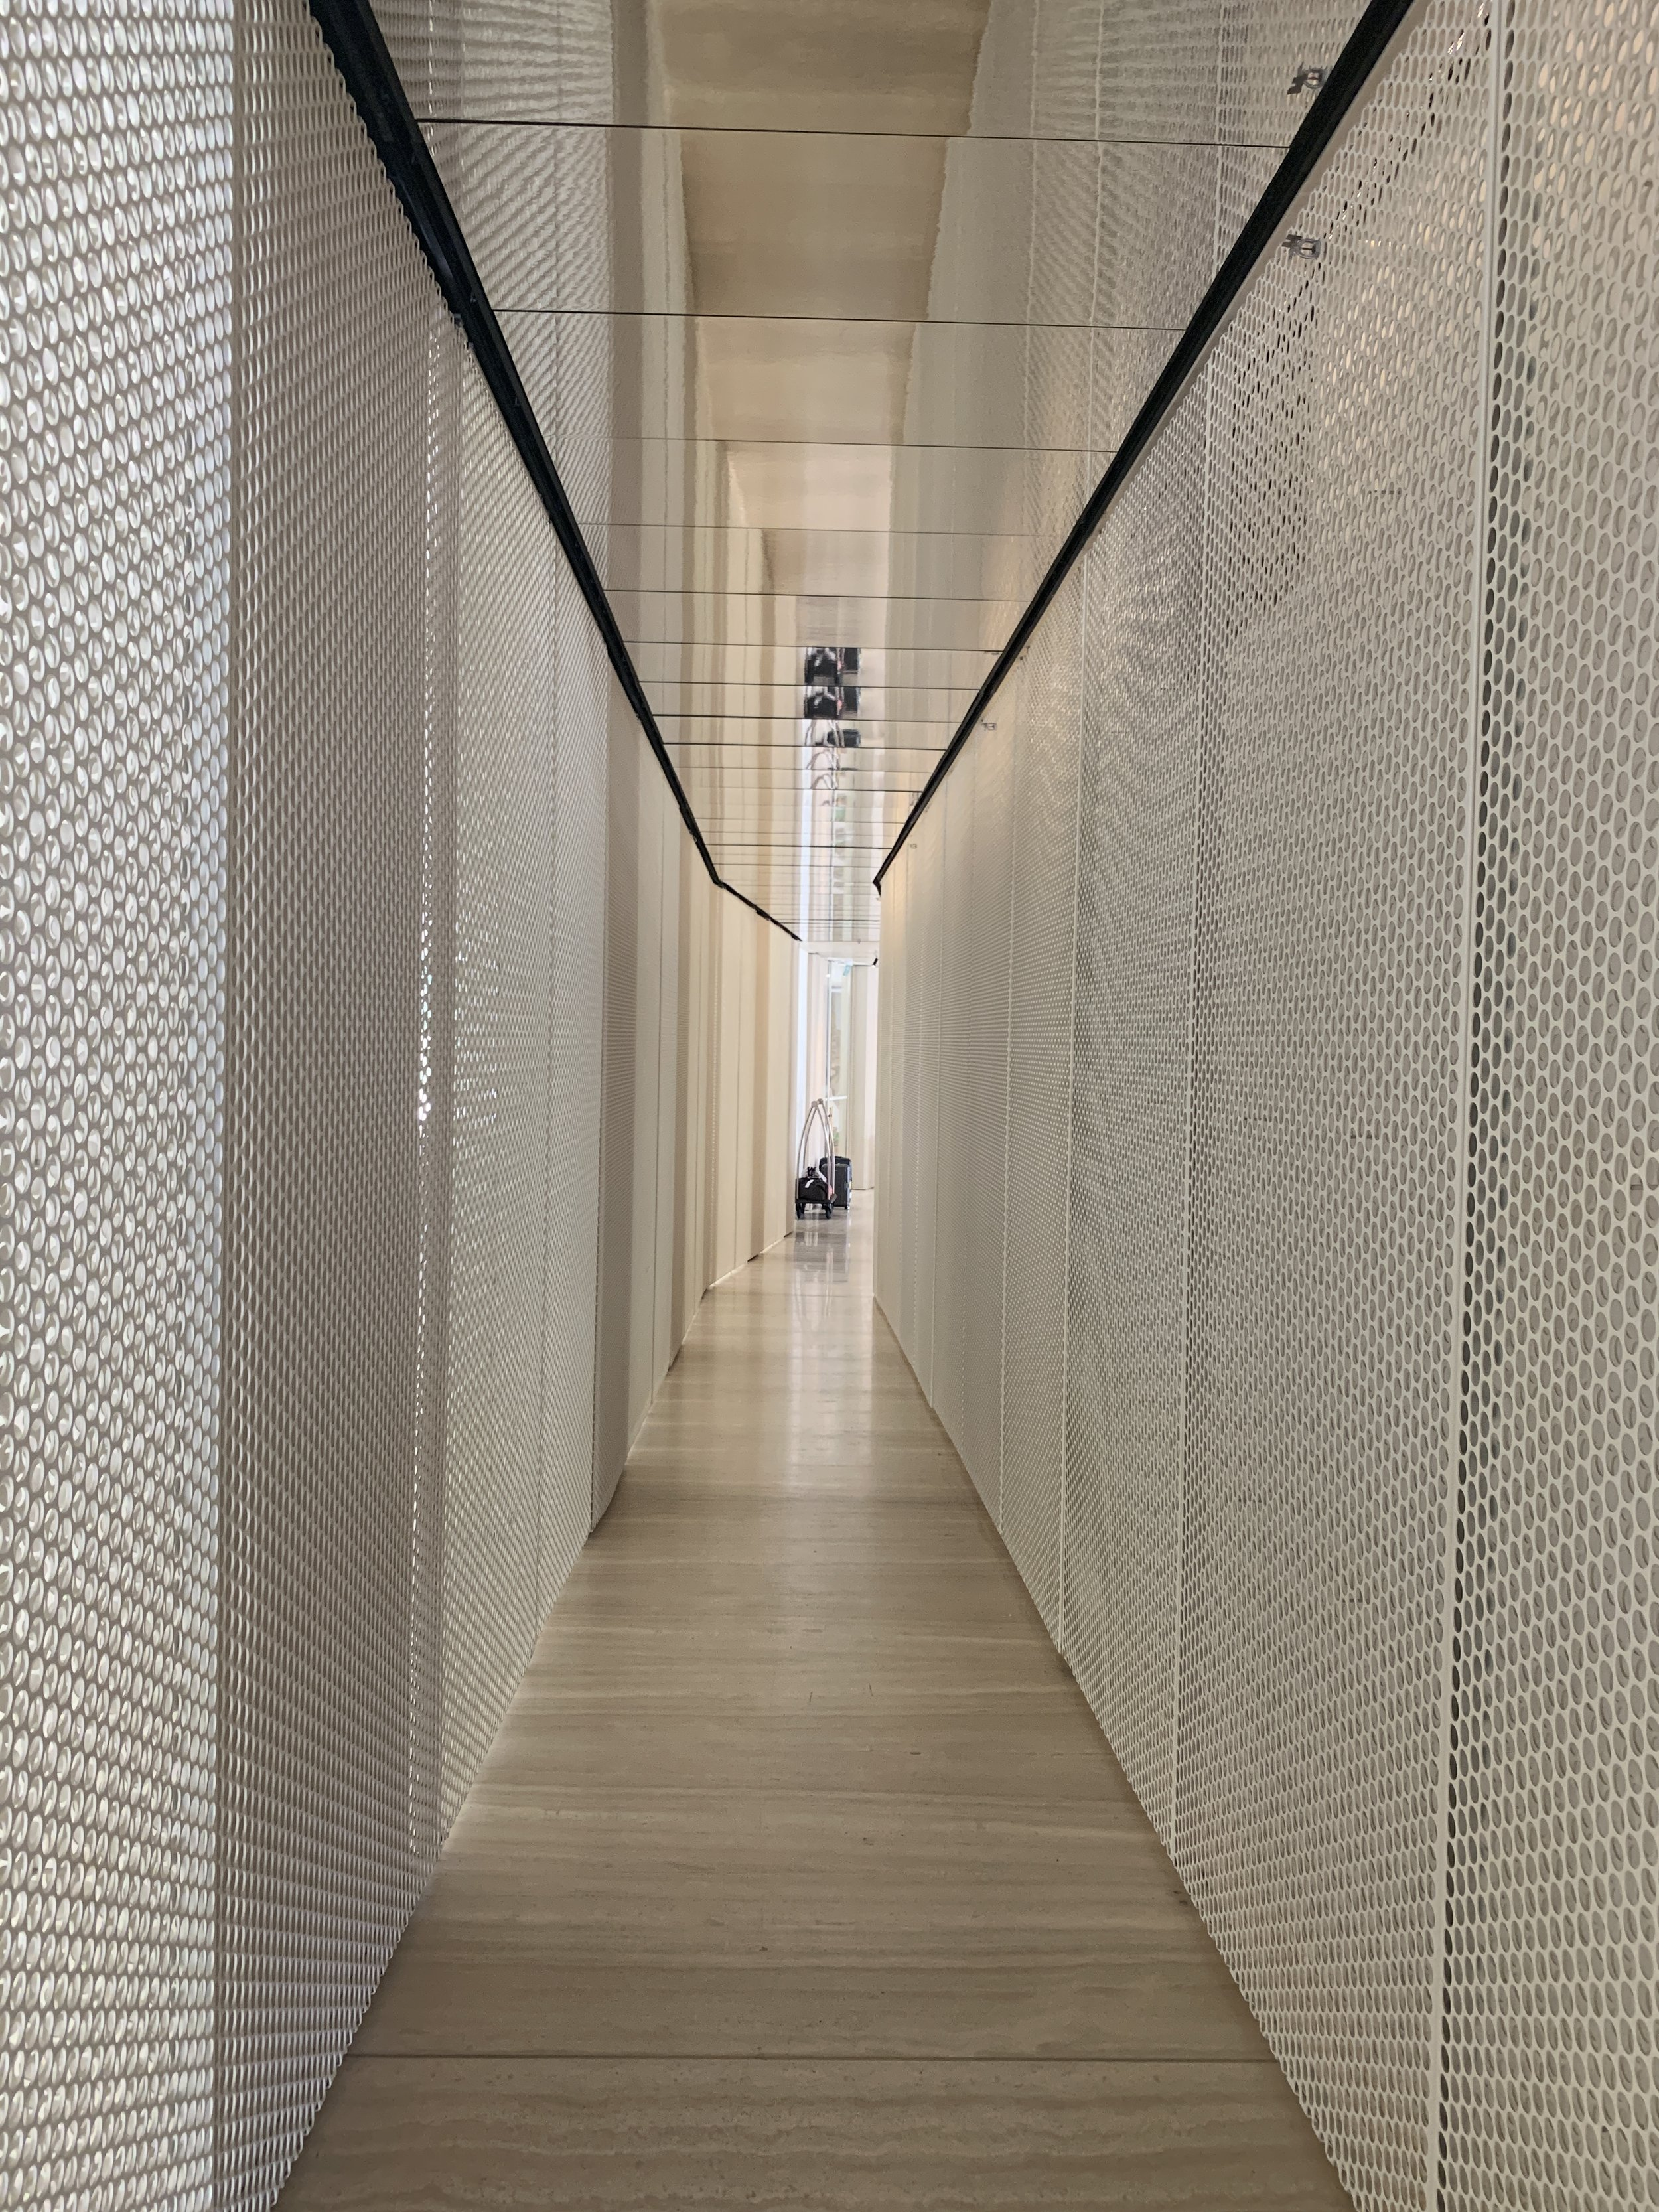 Entry to The Jaffa, layered perforated white powder coated steel layers create a beautiful design motif which weaves it way throughout the entire hotel.